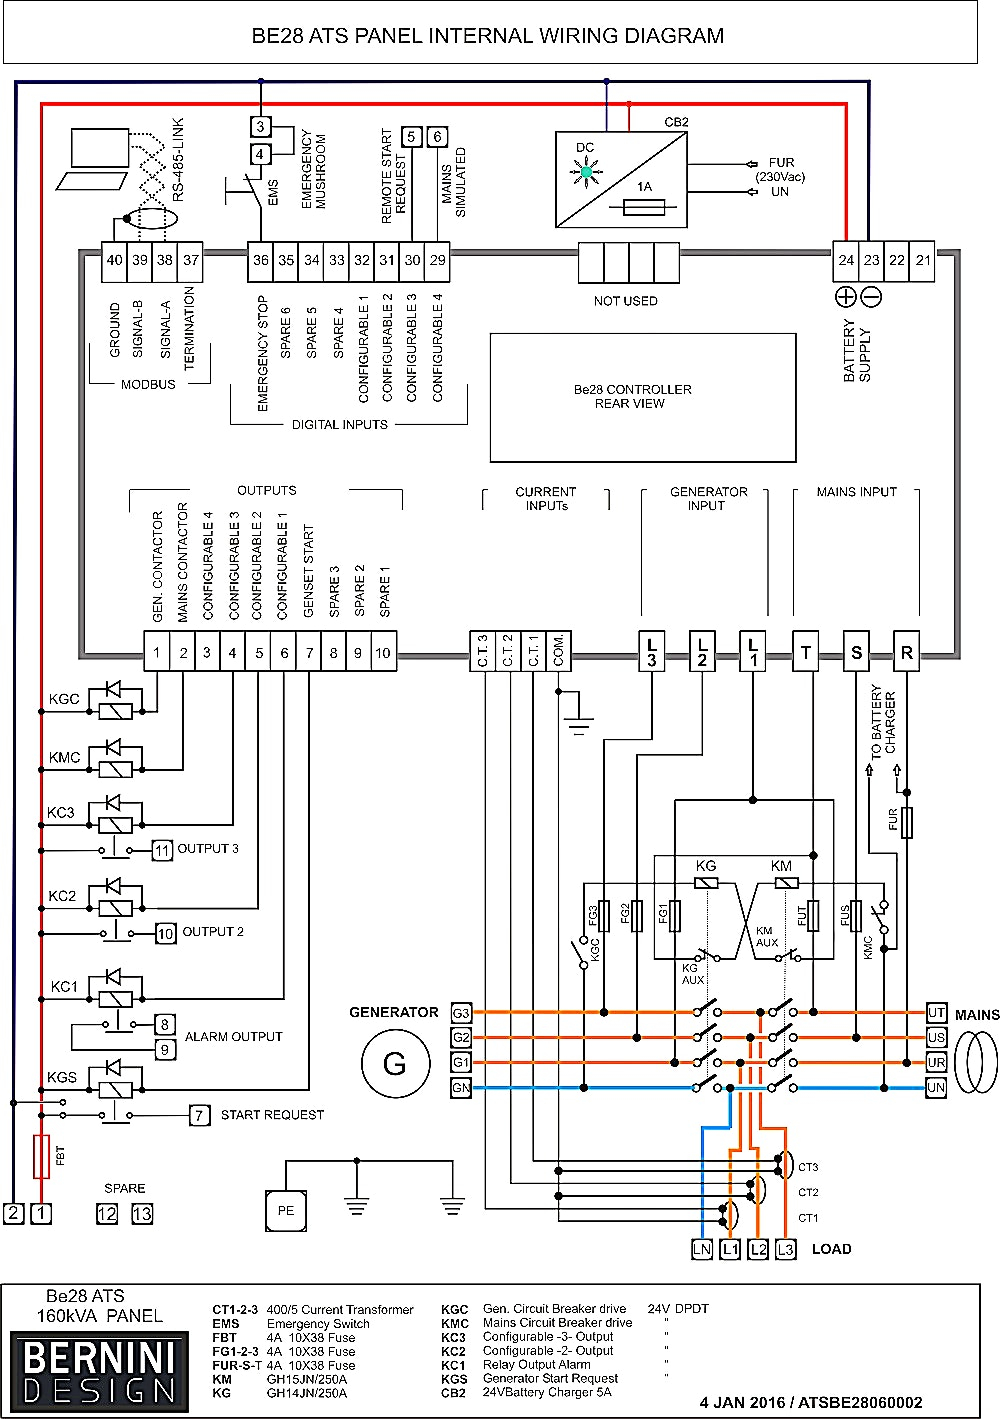 Generac Wiring Diagram - Generac Automatic Transfer Switch Wiring Diagram  Simple Design Between solargenerator and 13c